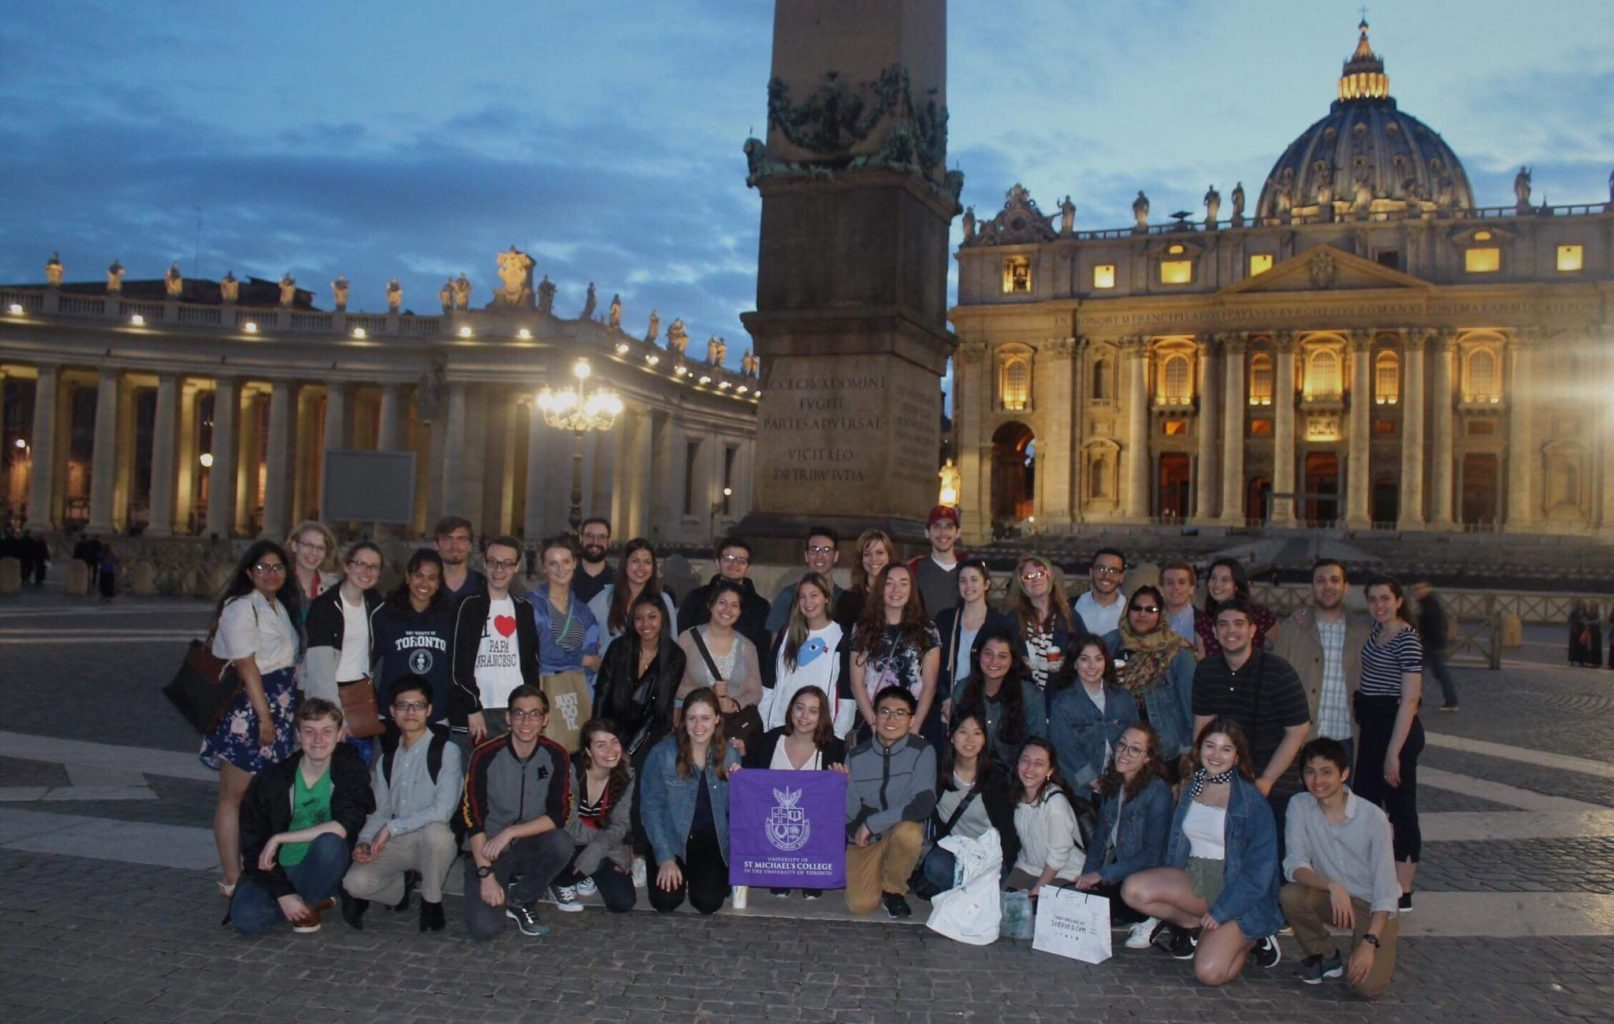 A large group of students in St. Peter's Square in Vatican City